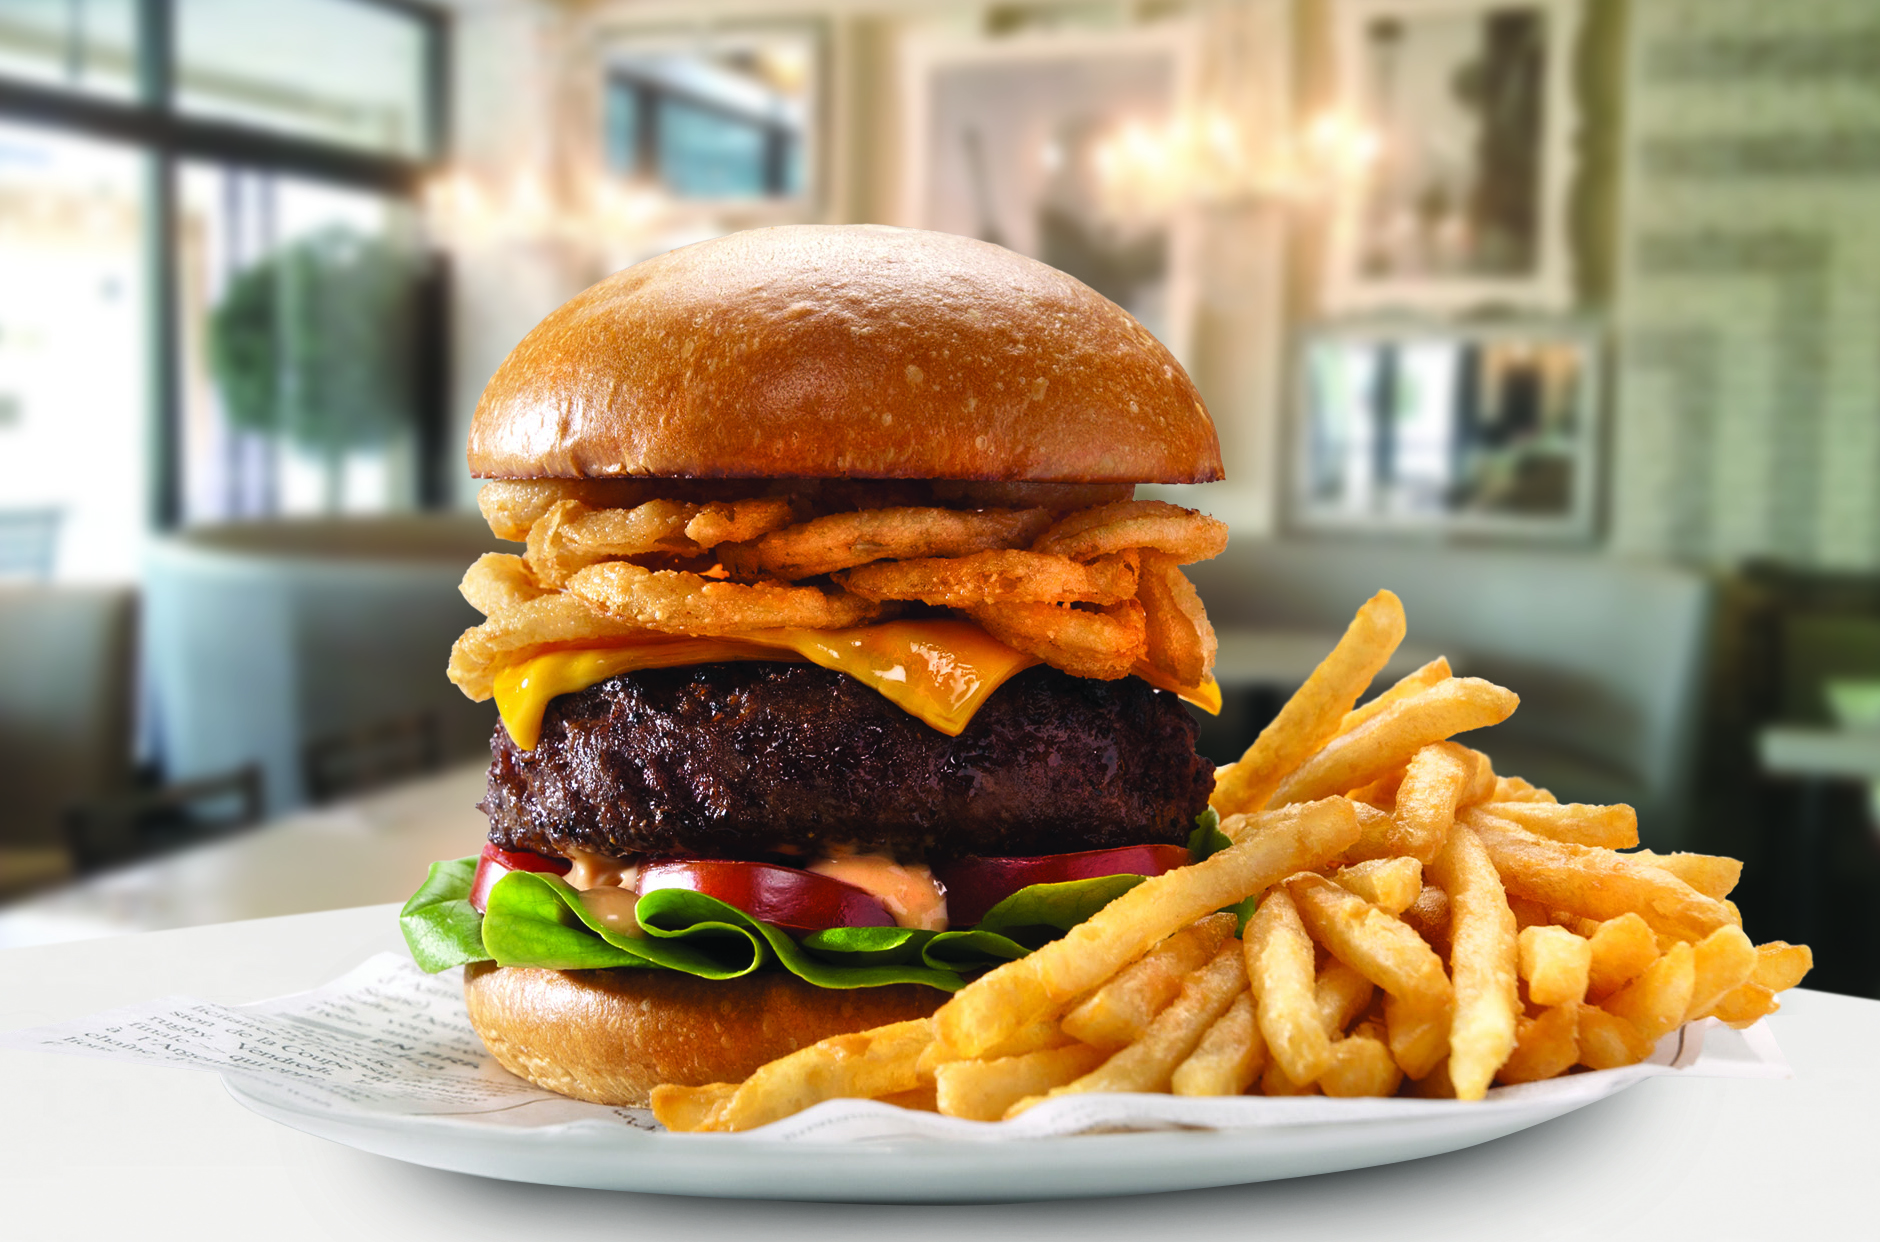 The Sugar Factory Burger at the Theatre Box comes with a half-pound of Angus beef, crispy onions on a brioche bun.